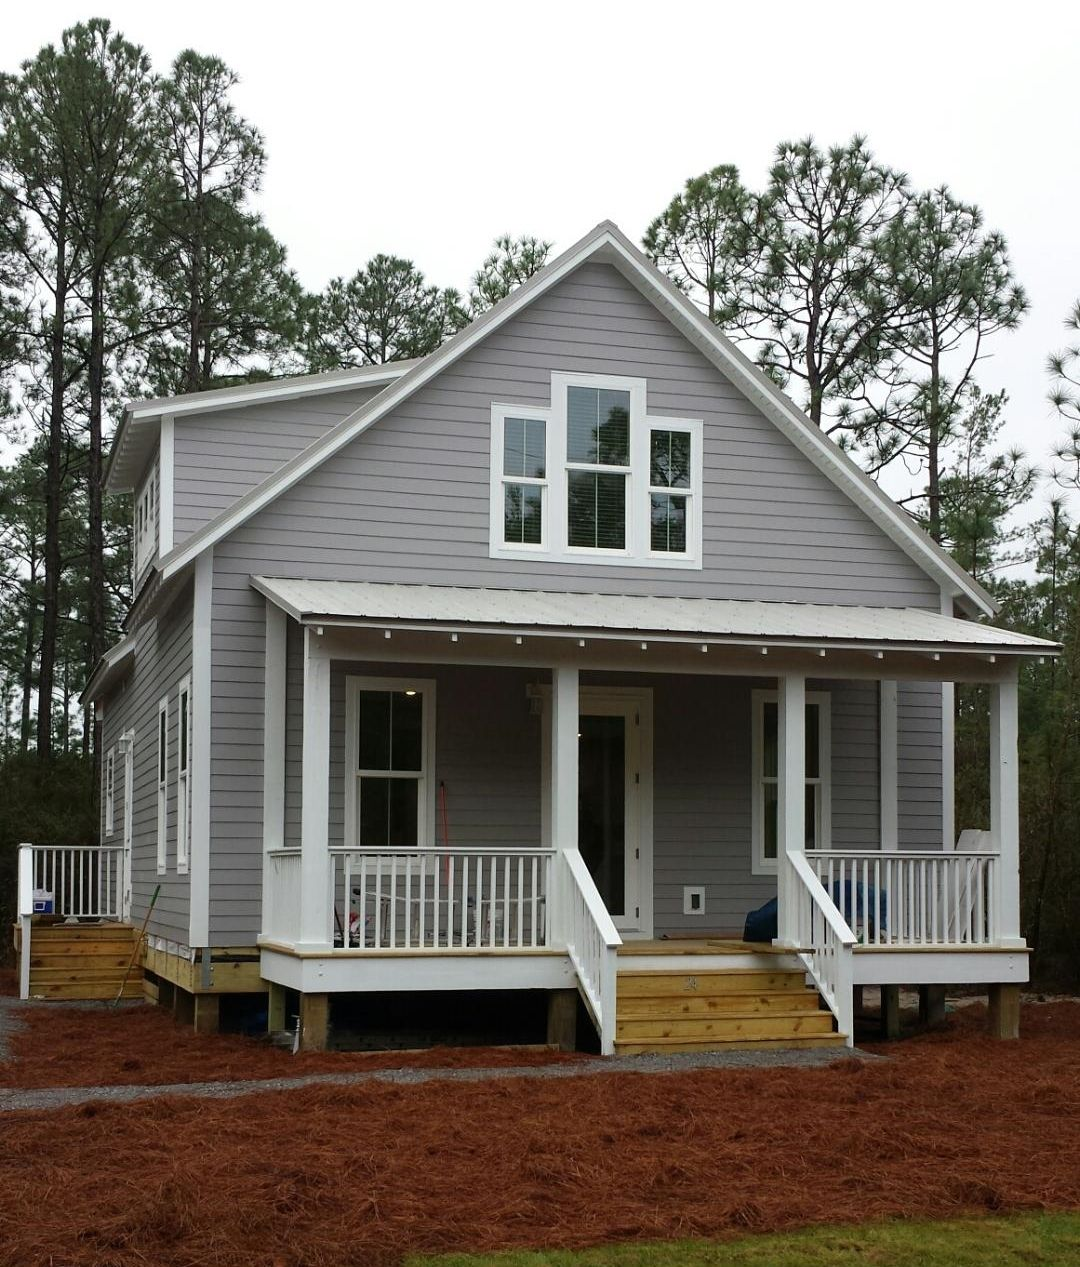 Greenbriar Modular Home Santa Rosa Beach Florida Custom Built Modular Homes  at Affinity Building Systems in